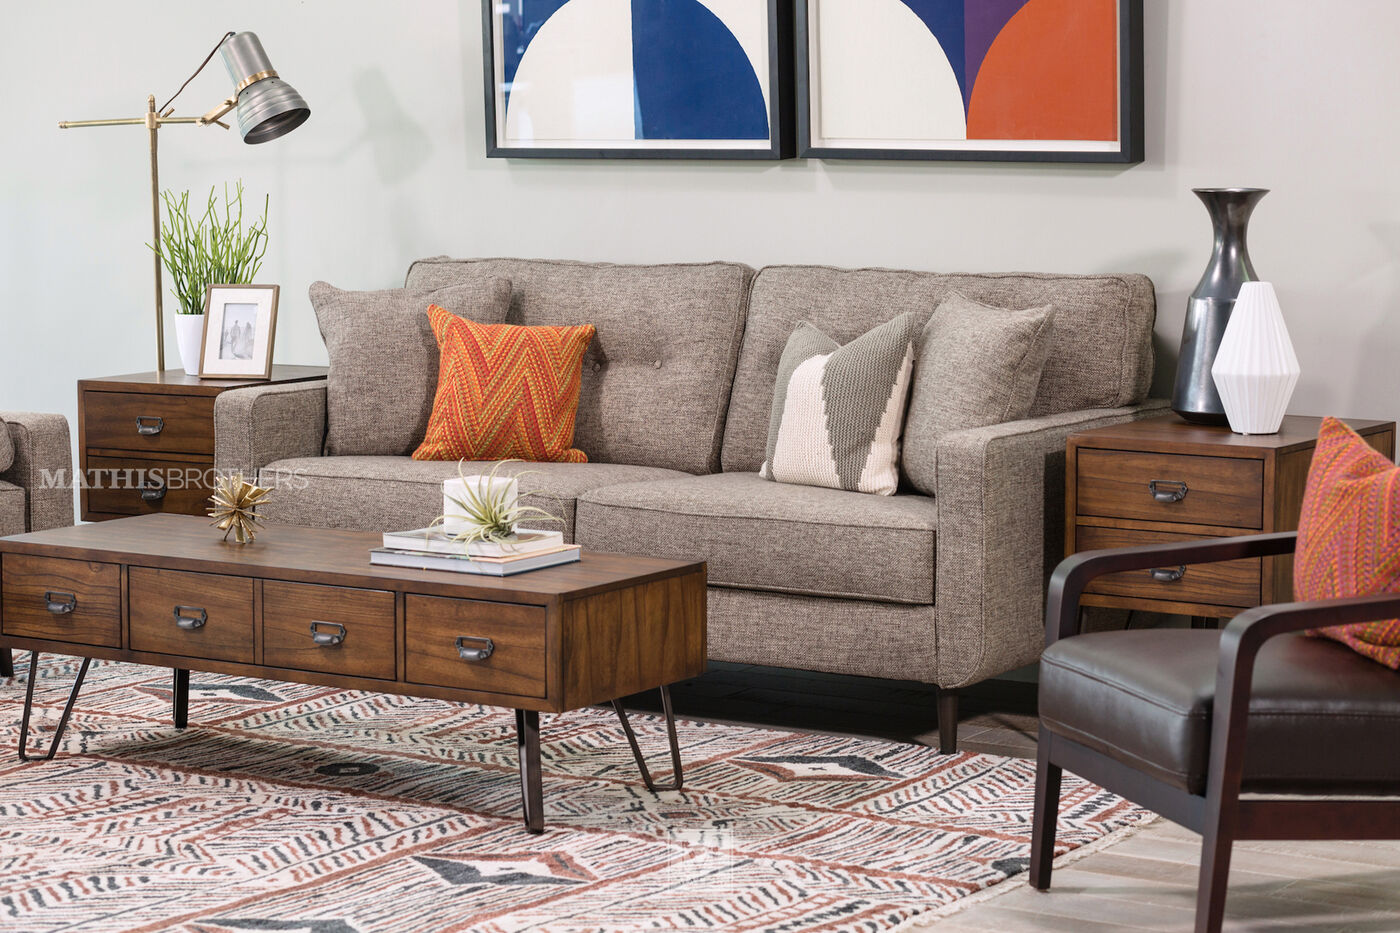 Modern button tufted 79 sofa in jute mathis brothers for Modern furniture sites